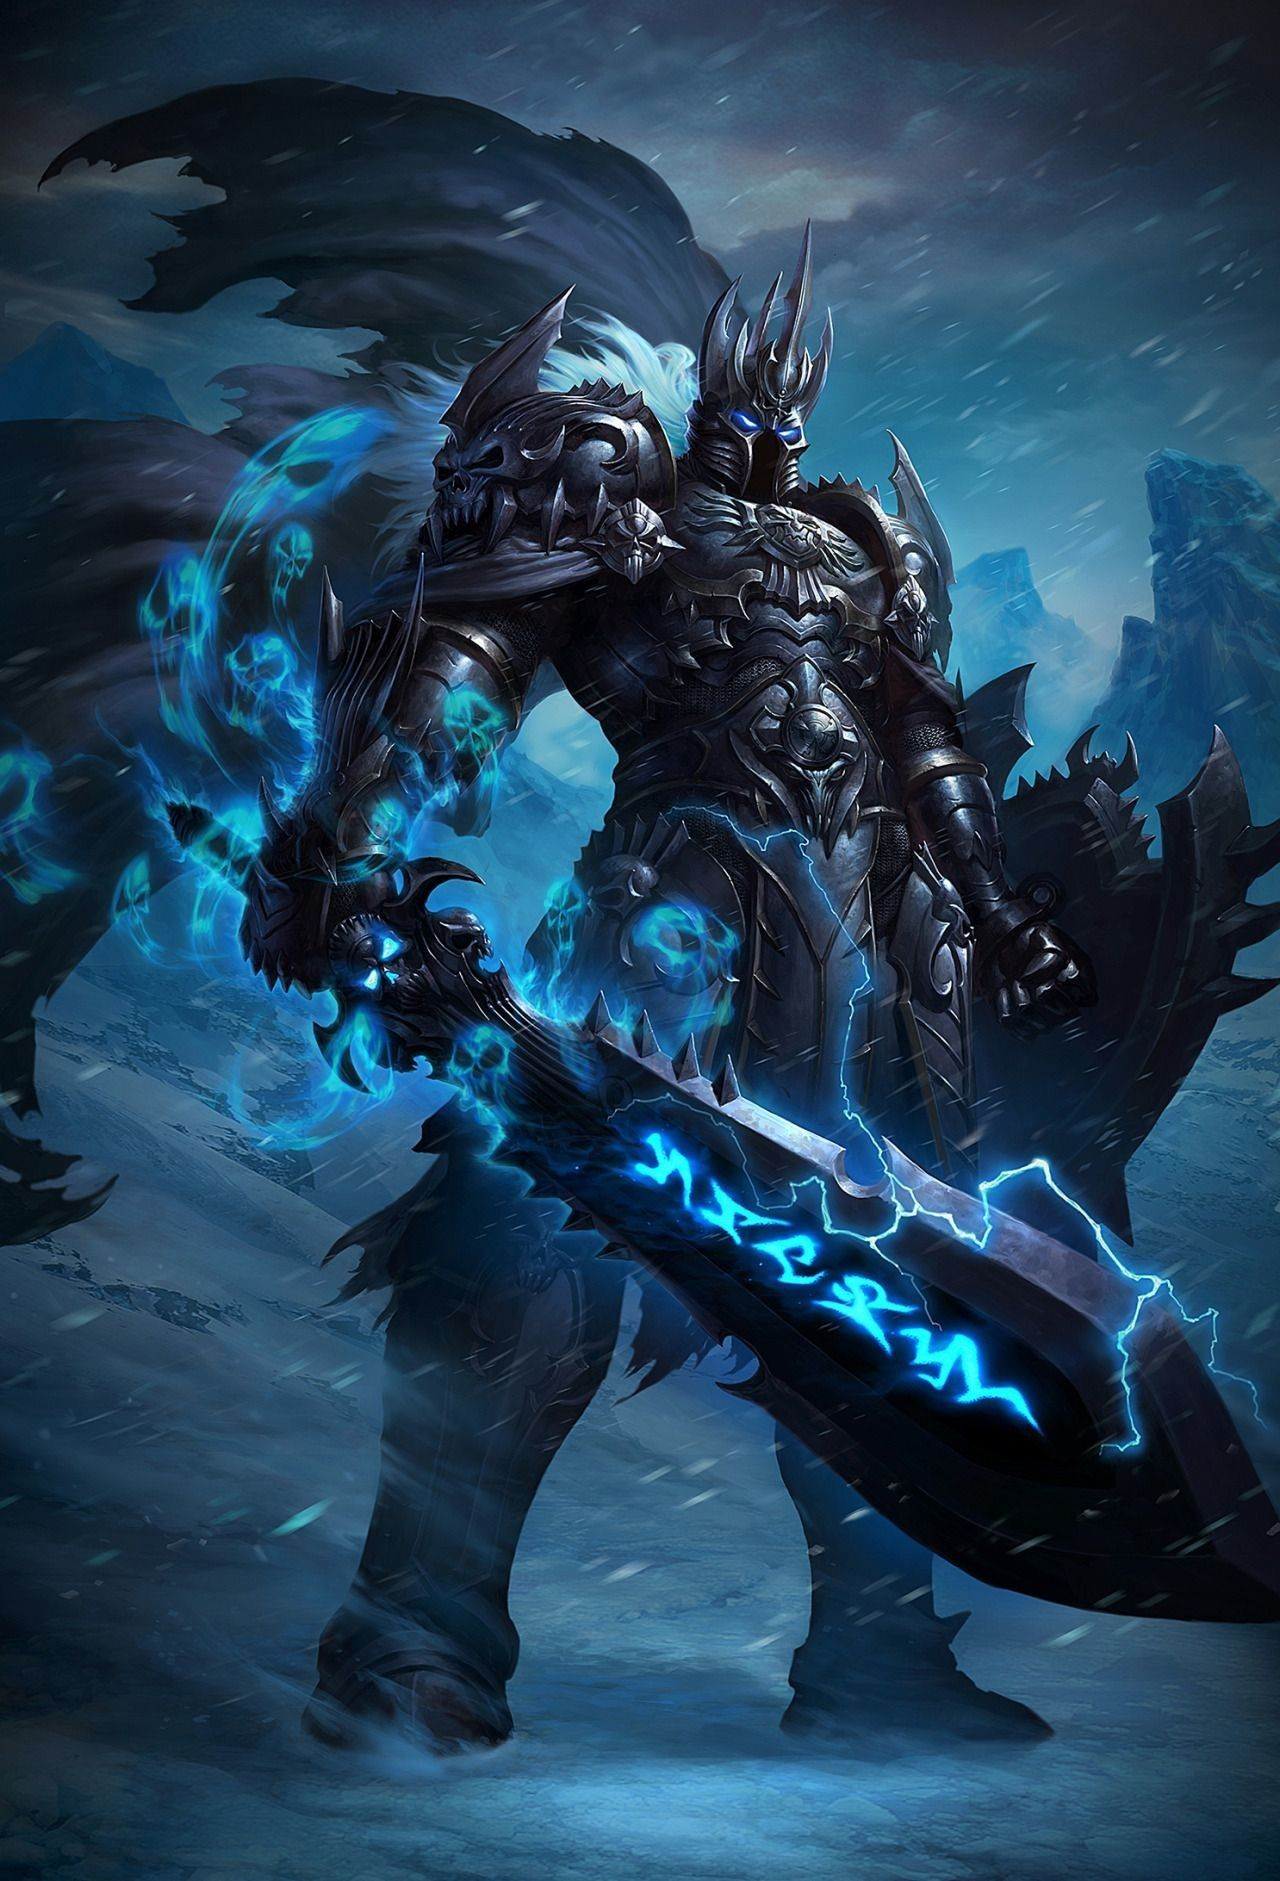 Arthas Menethil The Lich King Lovag Harcosok